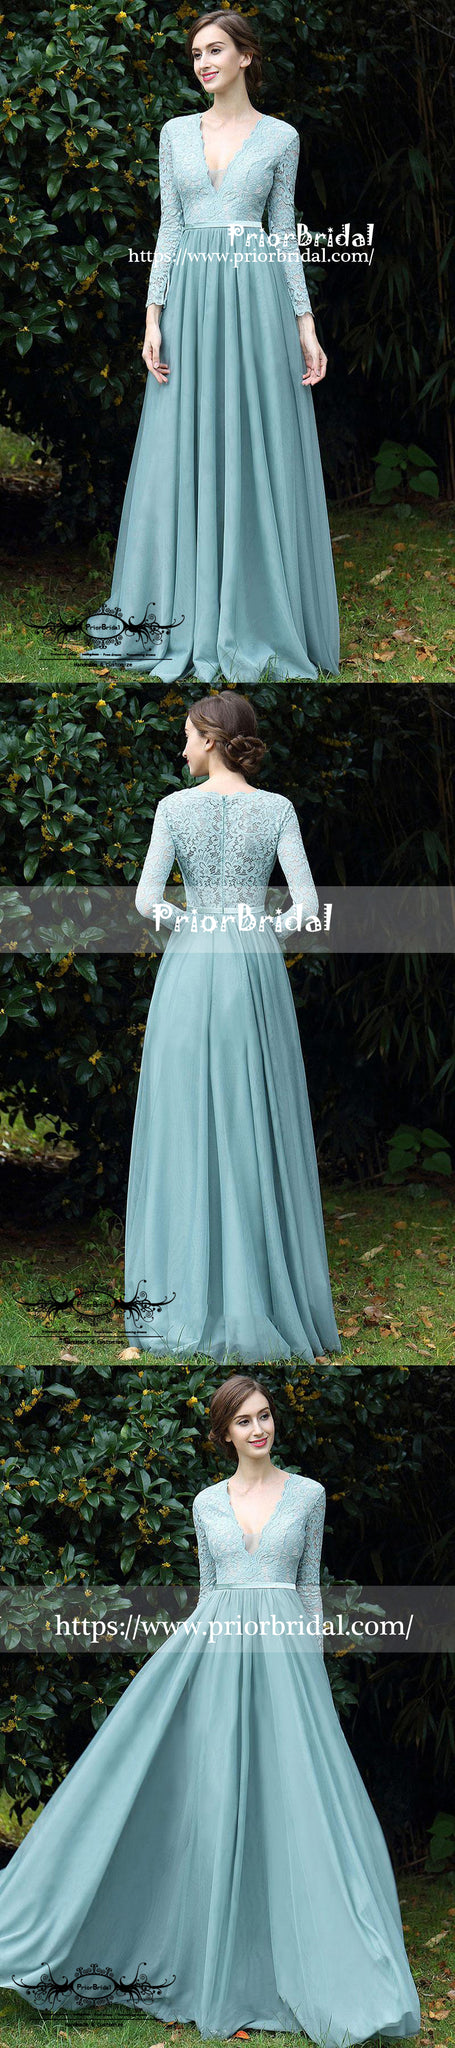 d76ae8898711 ... Long Sleeve Tiffany Blue Lace Top Chiffon V-neck A-line Bridesmaid  Dresses